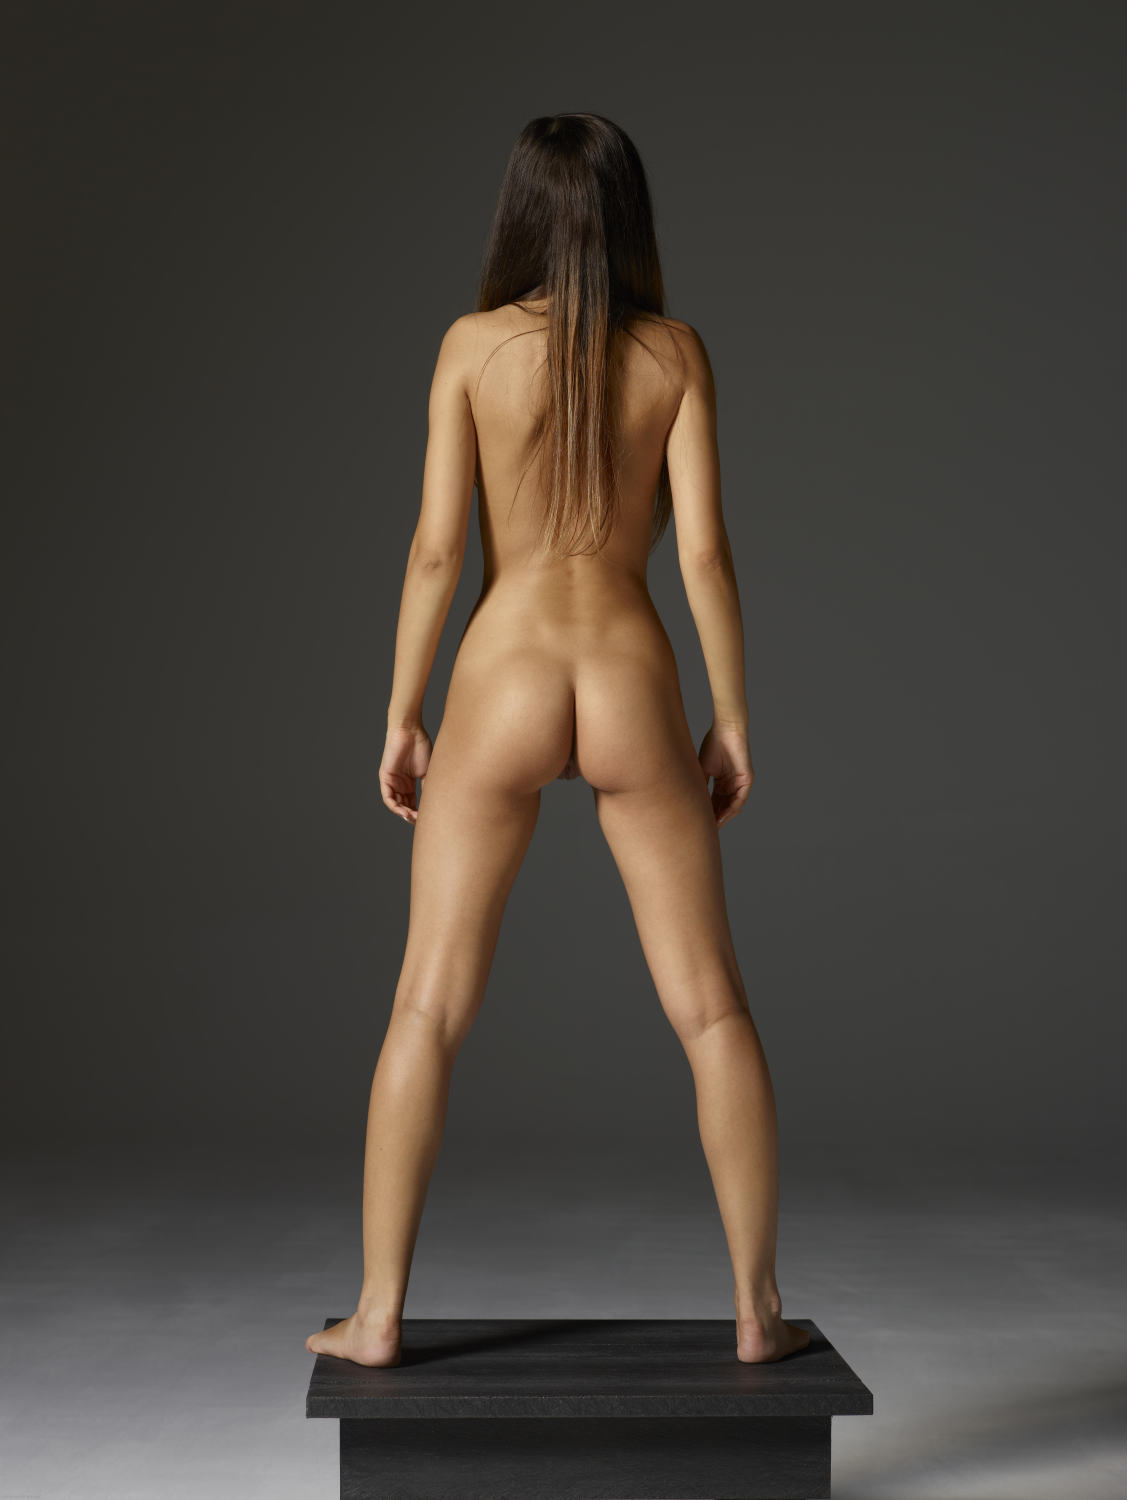 nude girls humping each other gif